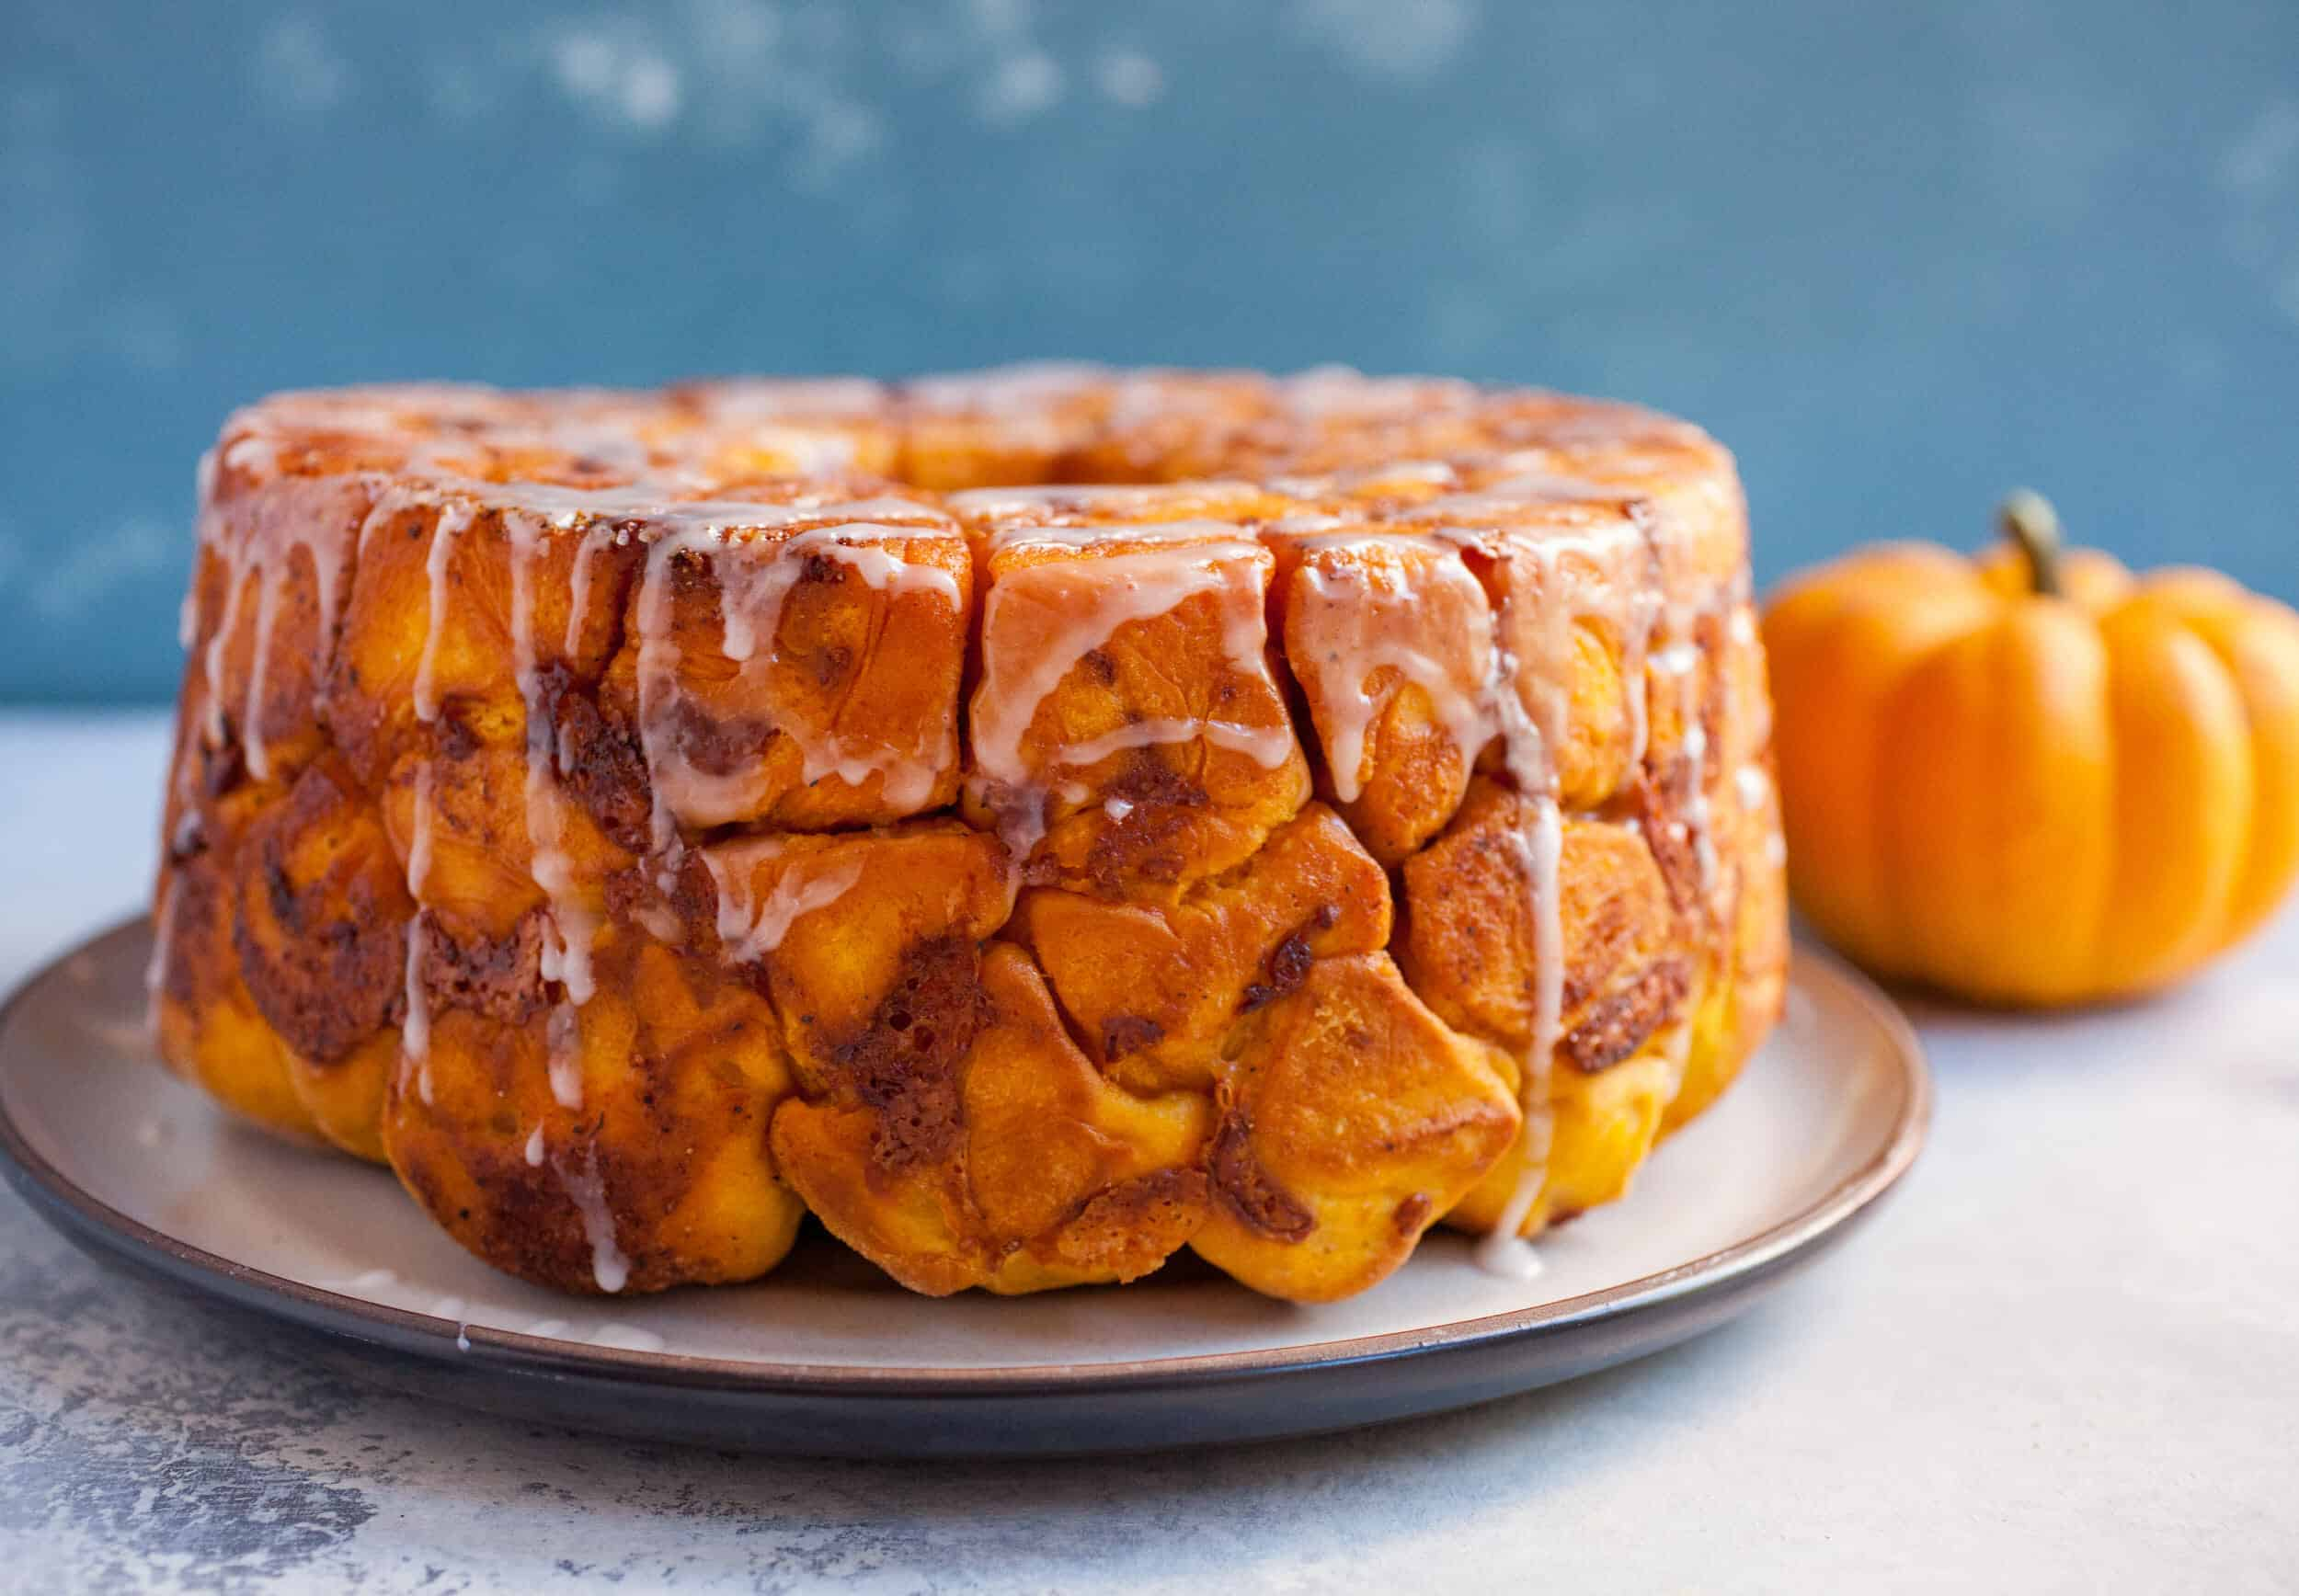 Pumpkin Gruyere Monkey Bread: This is my new favorite pumpkin item. It's the perfect blend of savory and sweet. Easy to eat, but hard to share! | macheesmo.com